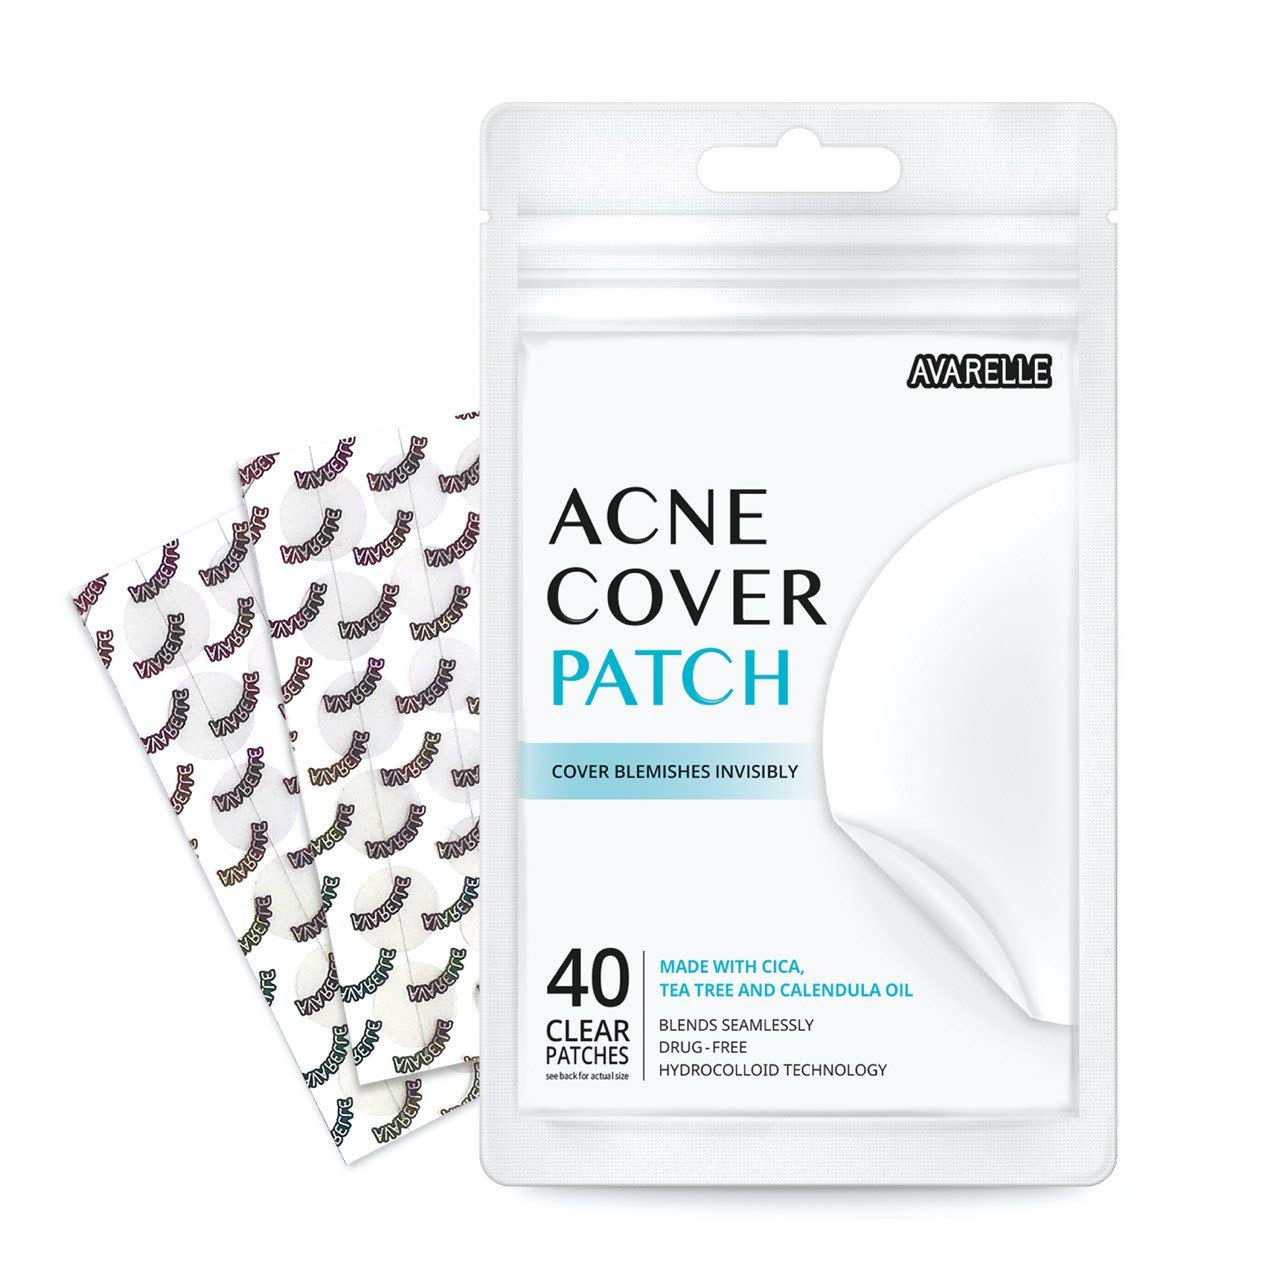 Avarelle Acne Absorbing Cover Patch Hydrocolloid Spot Treatment with Tea Tree Oil, Calendula Oil and Cica, Vegan, Cruelty Free Certified (40 Count): Beauty